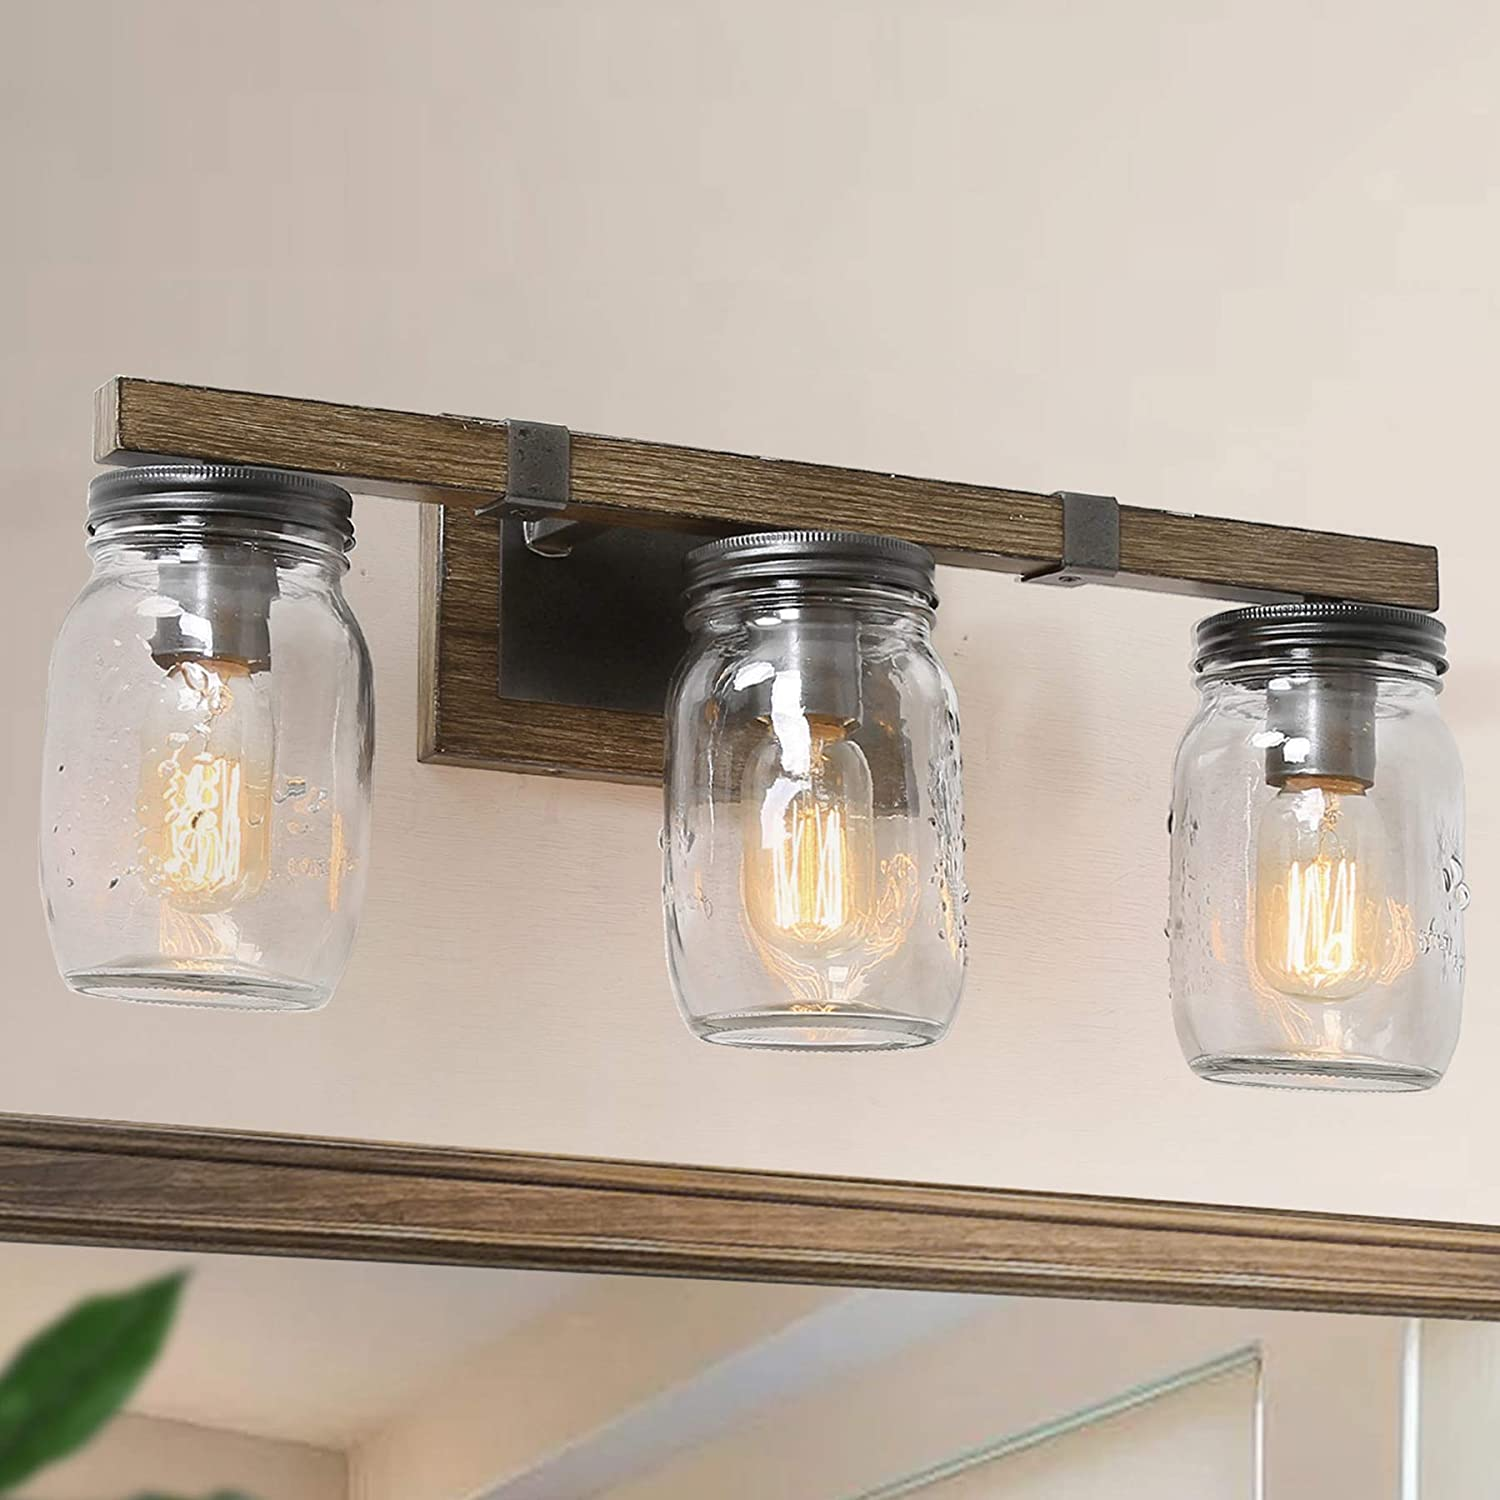 LNC Bathroom Light Fixtures, Farmhouse Bathroom Vanity Lights,Mason Jar Lights 3 Lights Bathroom Lighting